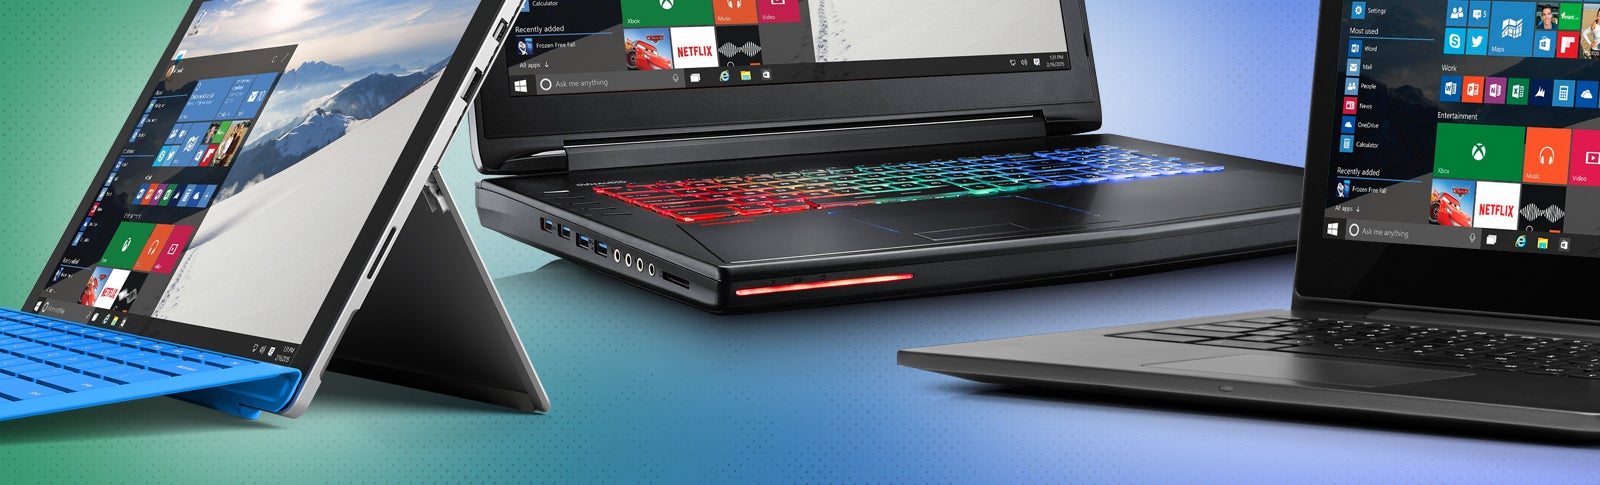 Best laptops 2019 Reviews and buying advice PCWorld